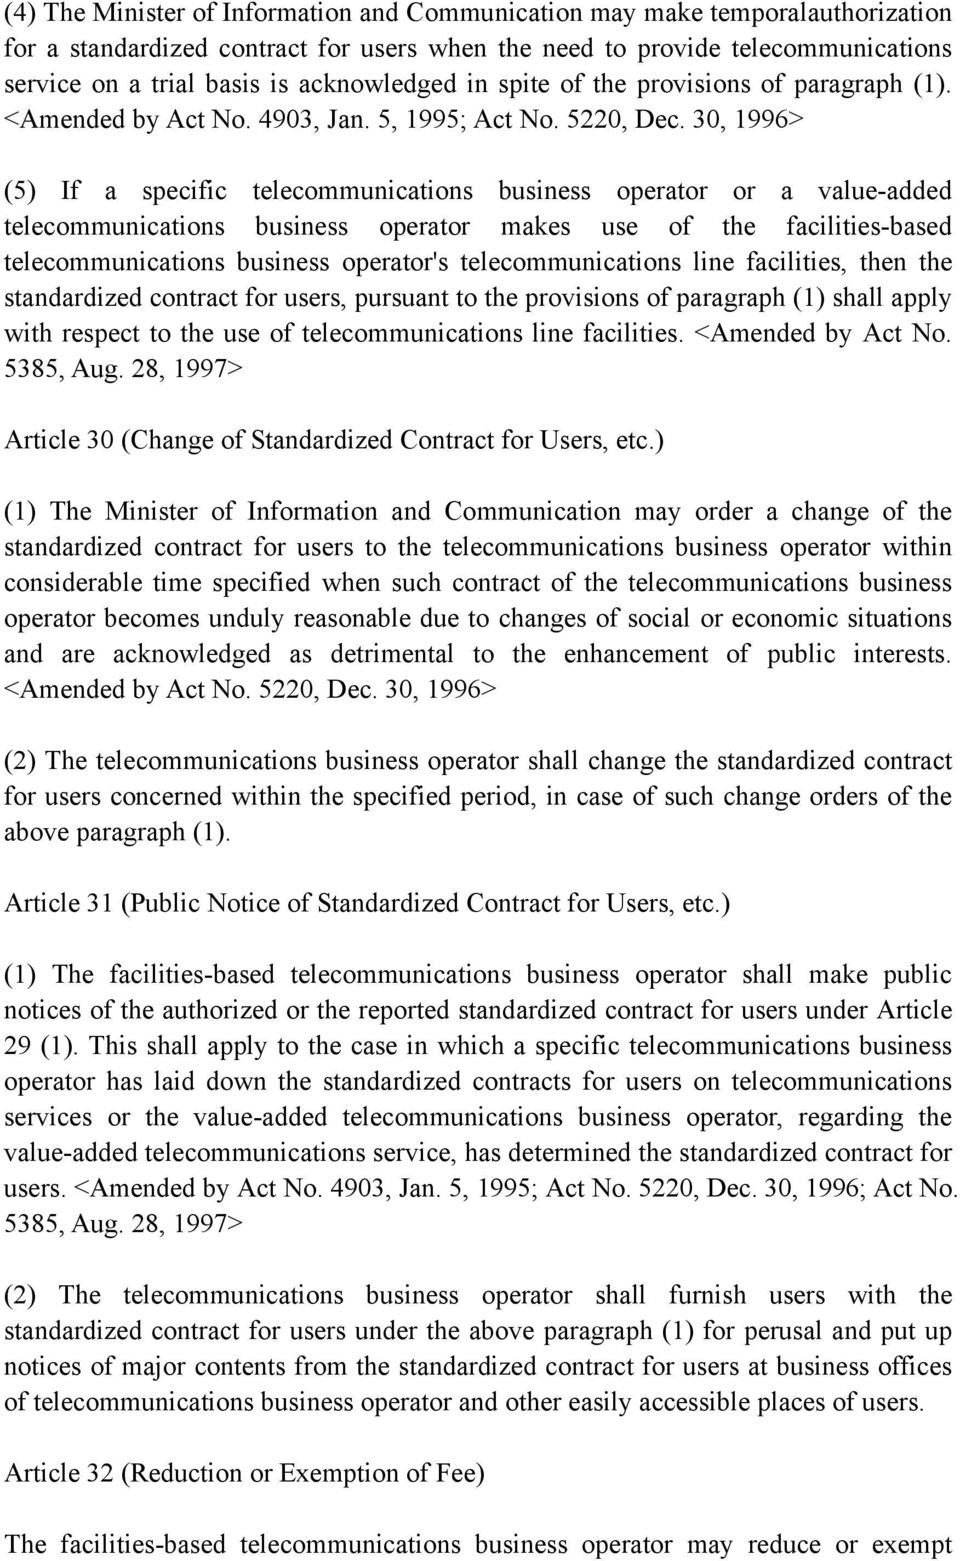 30, 1996> (5) If a specific telecommunications business operator or a value-added telecommunications business operator makes use of the facilities-based telecommunications business operator's